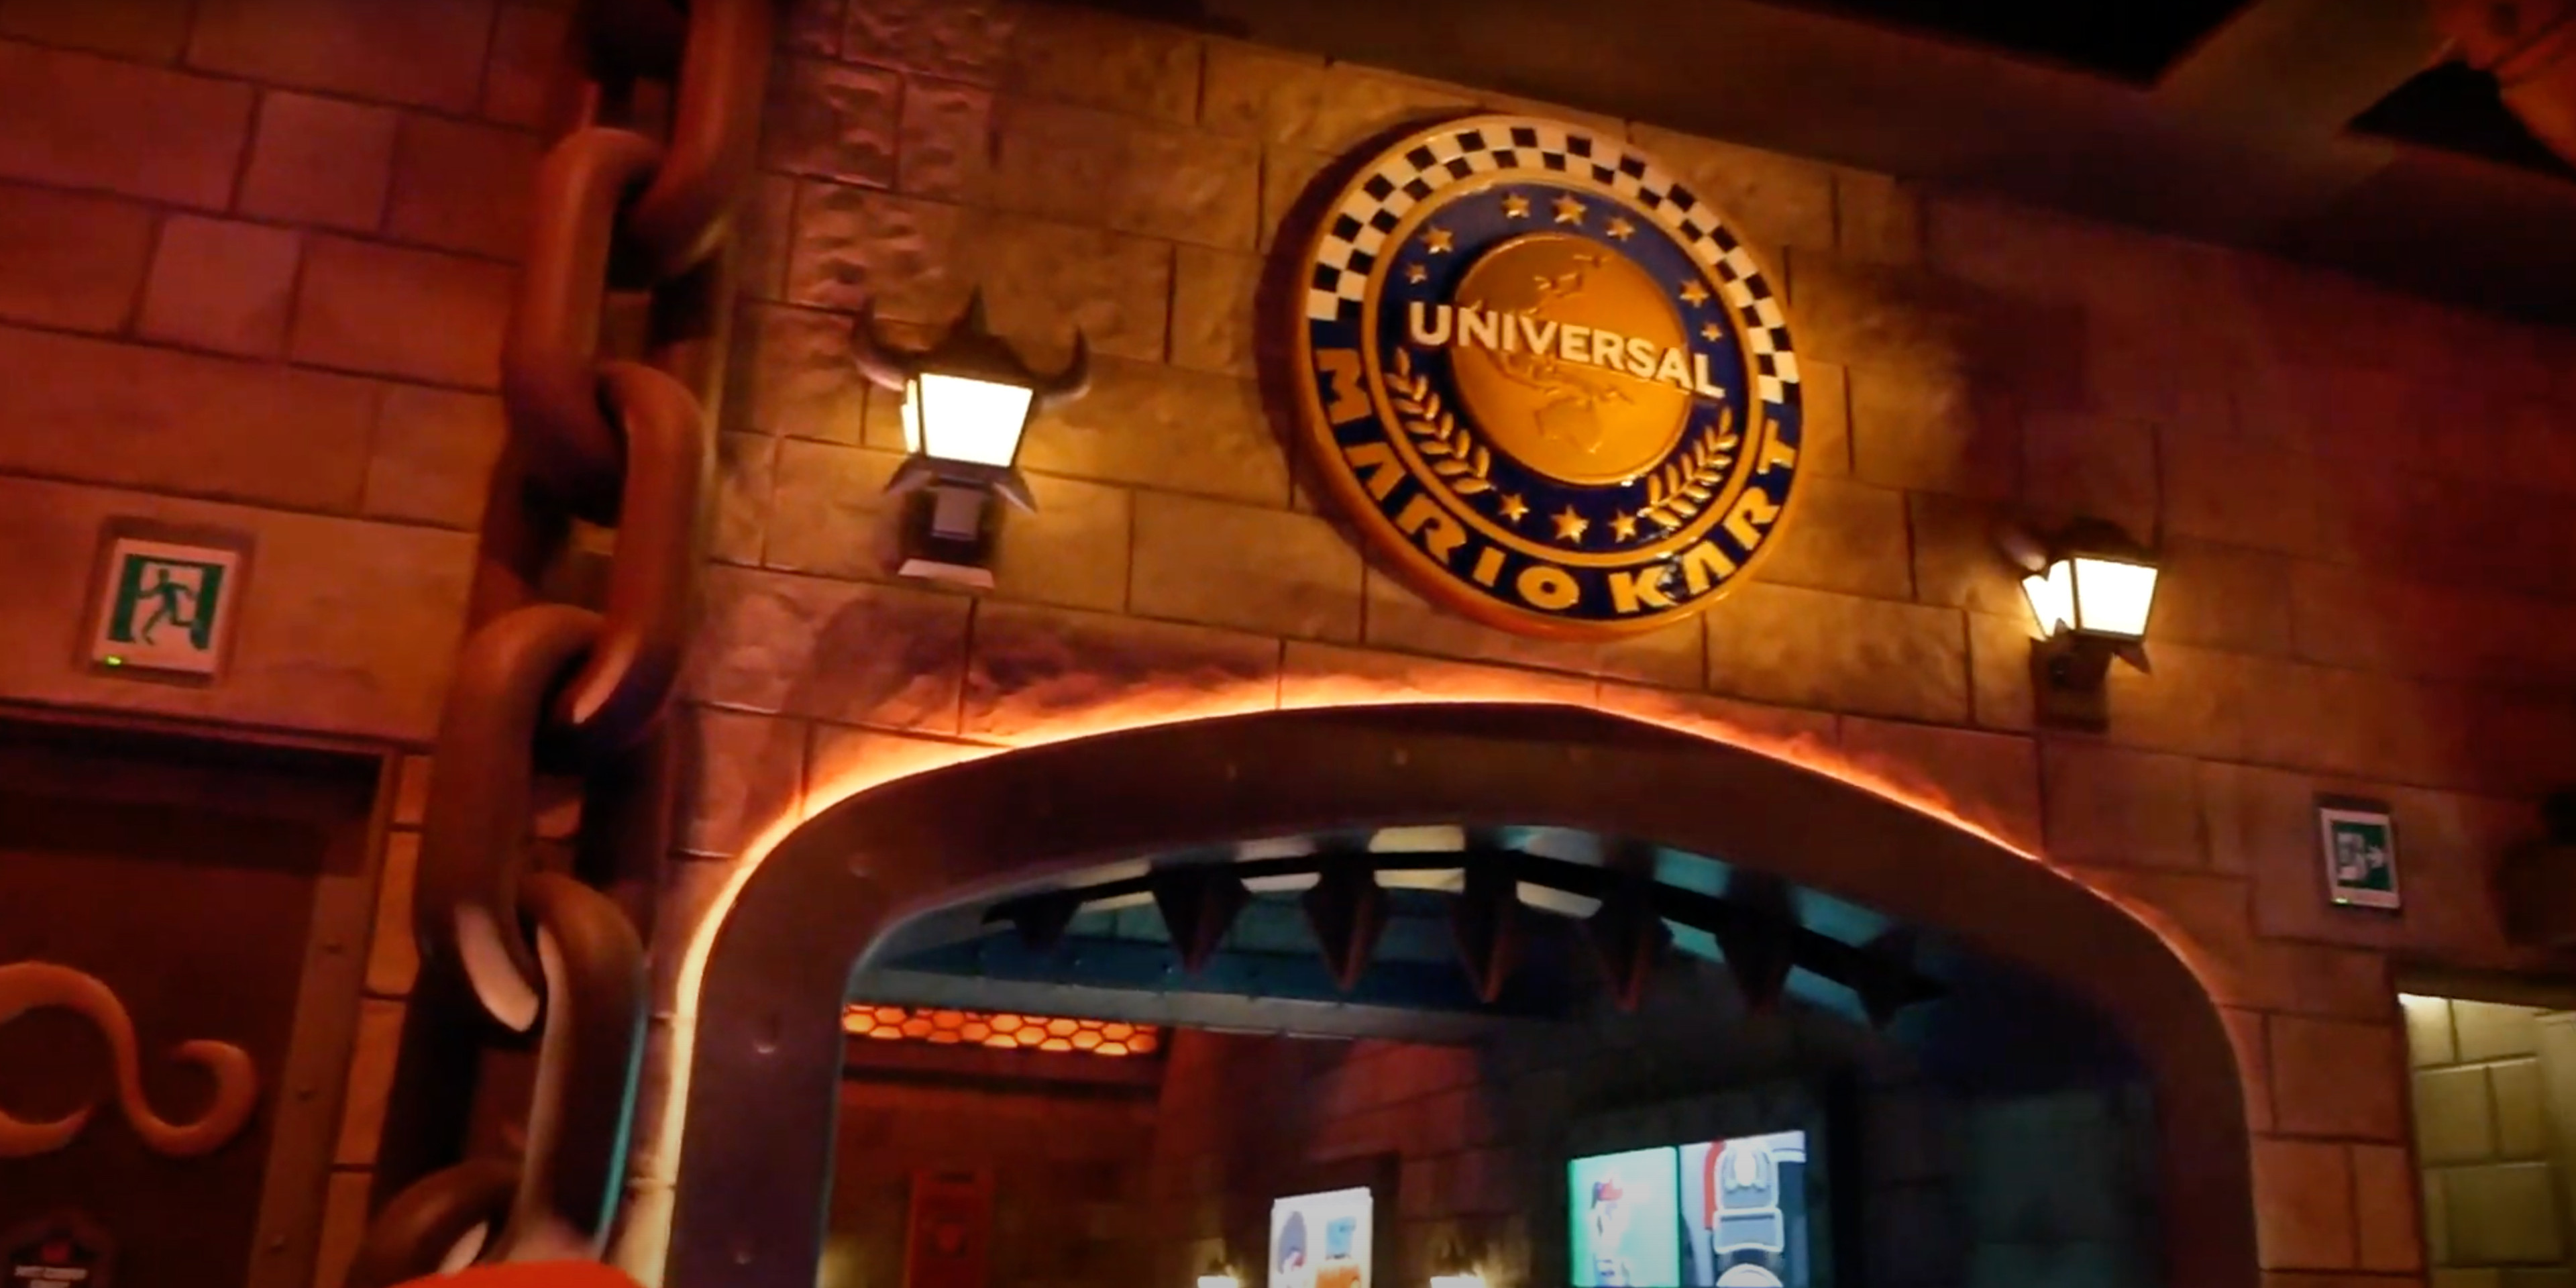 The Universal Medallion can also be seen at the very end of the attraction. Photo Credit: UniversalParksNewsToday